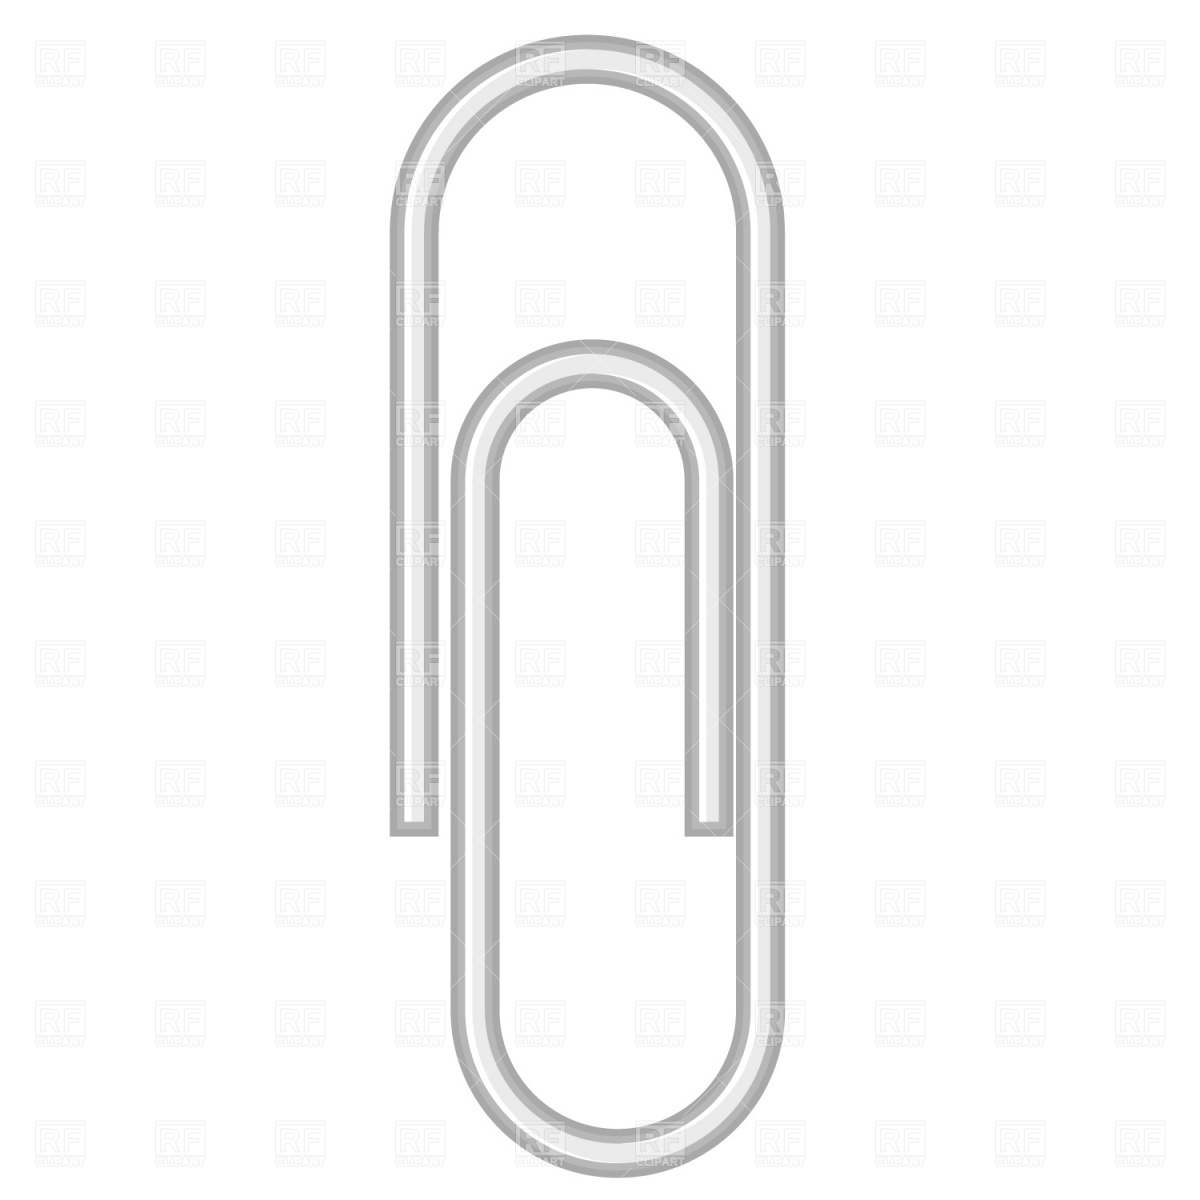 Clipart Paper Clip, Paperclip Free Clipart.